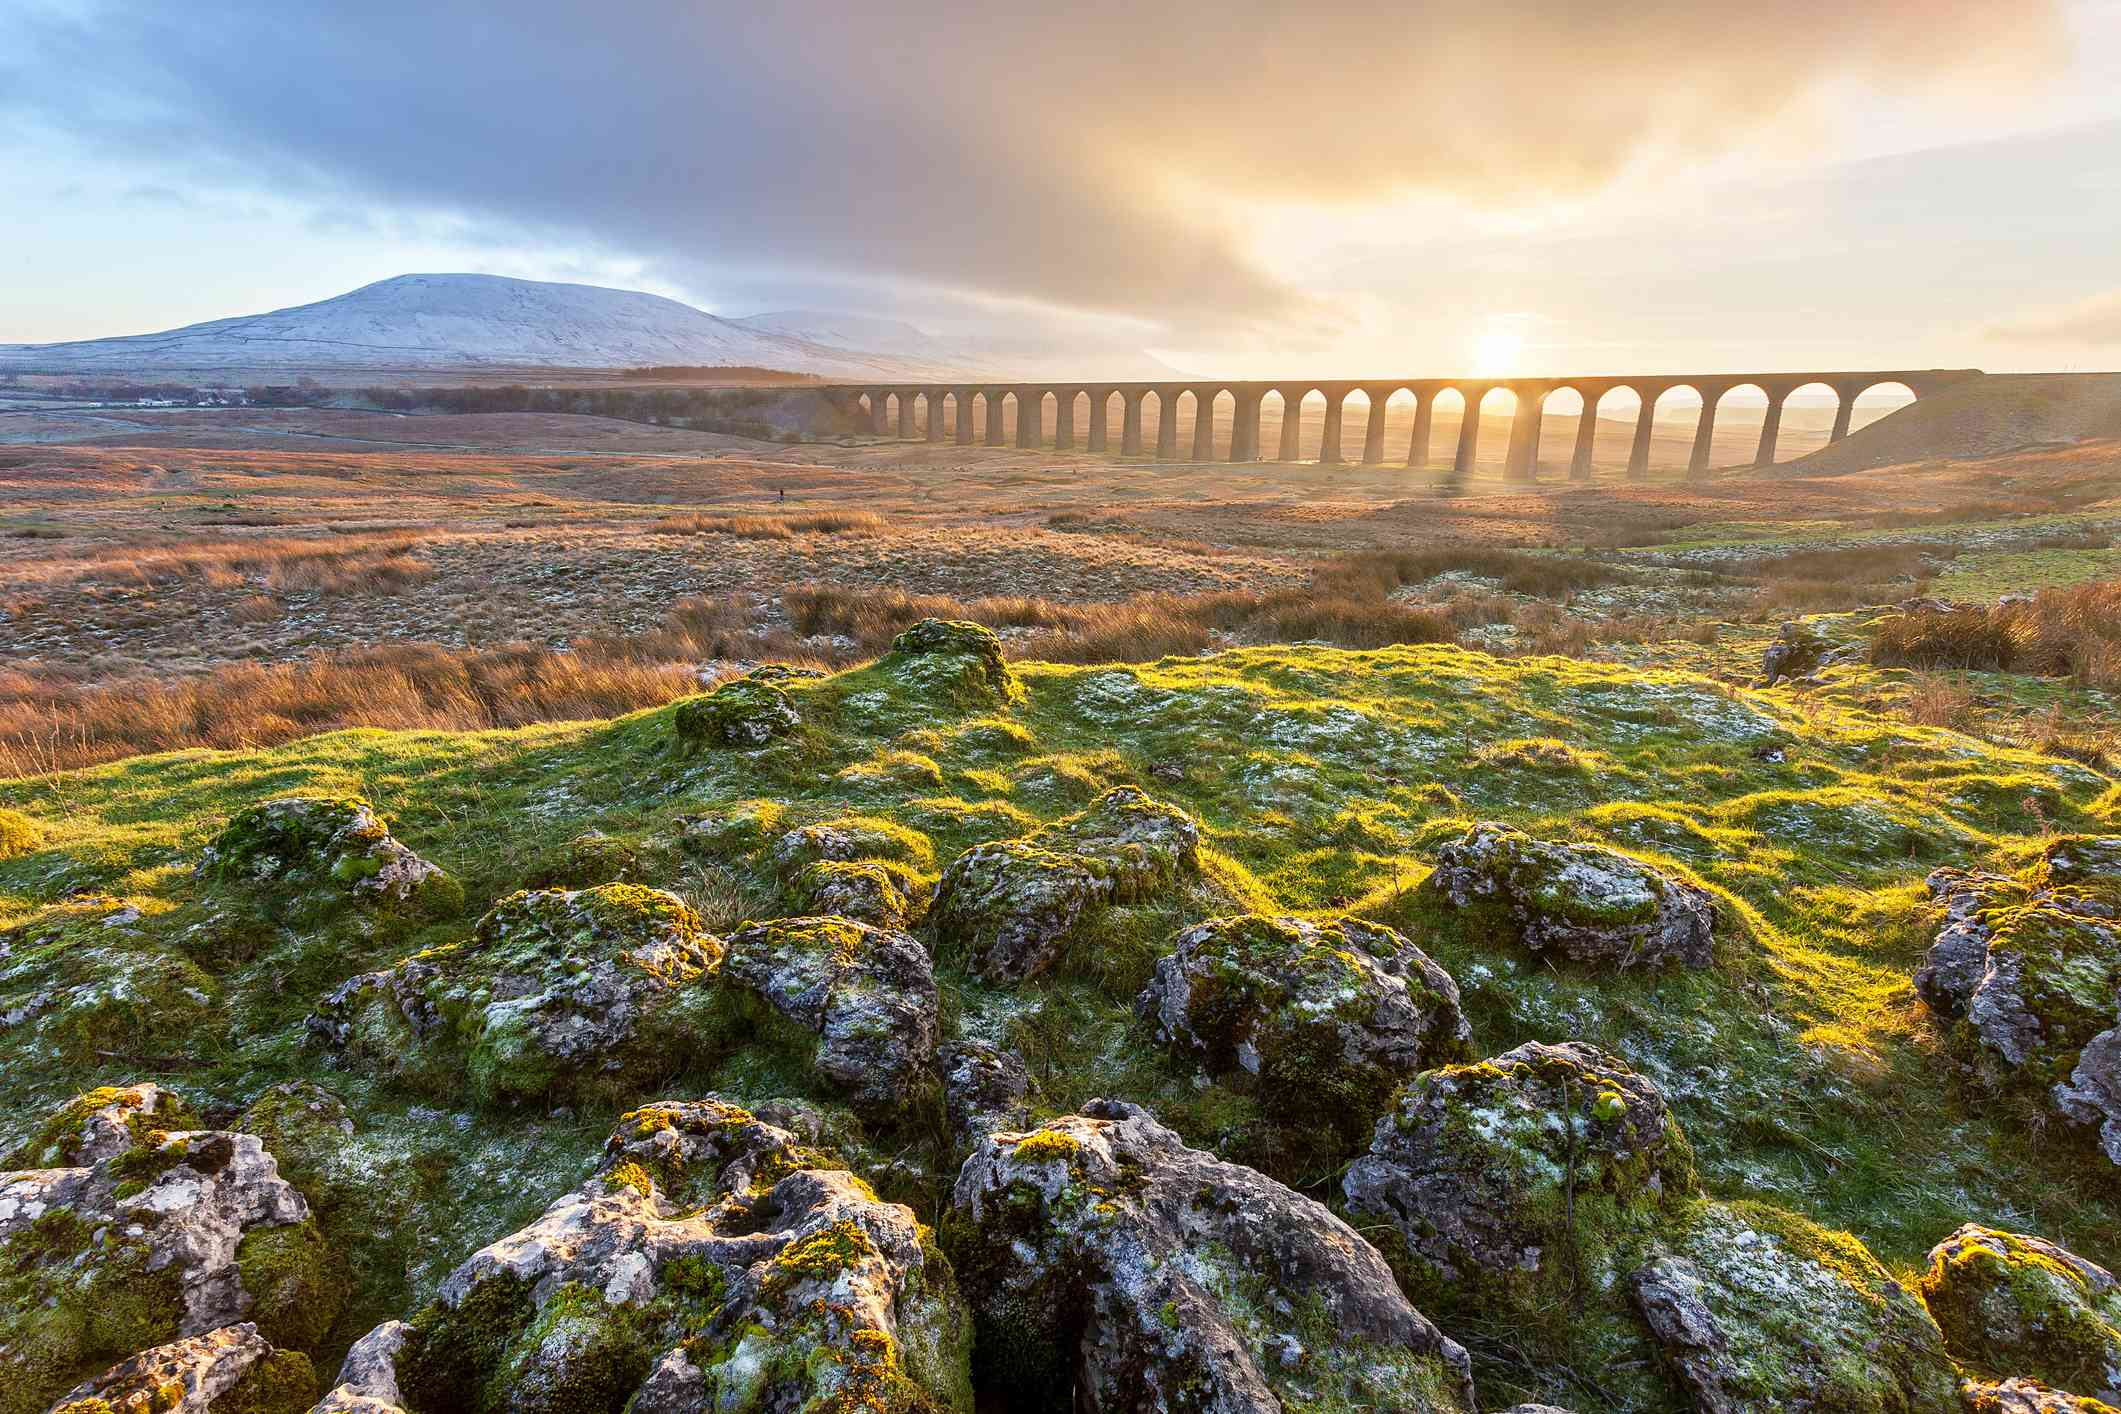 Sunset over Ribblehead viaduct on the Settle to Carlisle line in the Yorkshire Dales National Park. Surrounded by the three peaks of Ingleborough, Whernside and Pen-y-ghent.